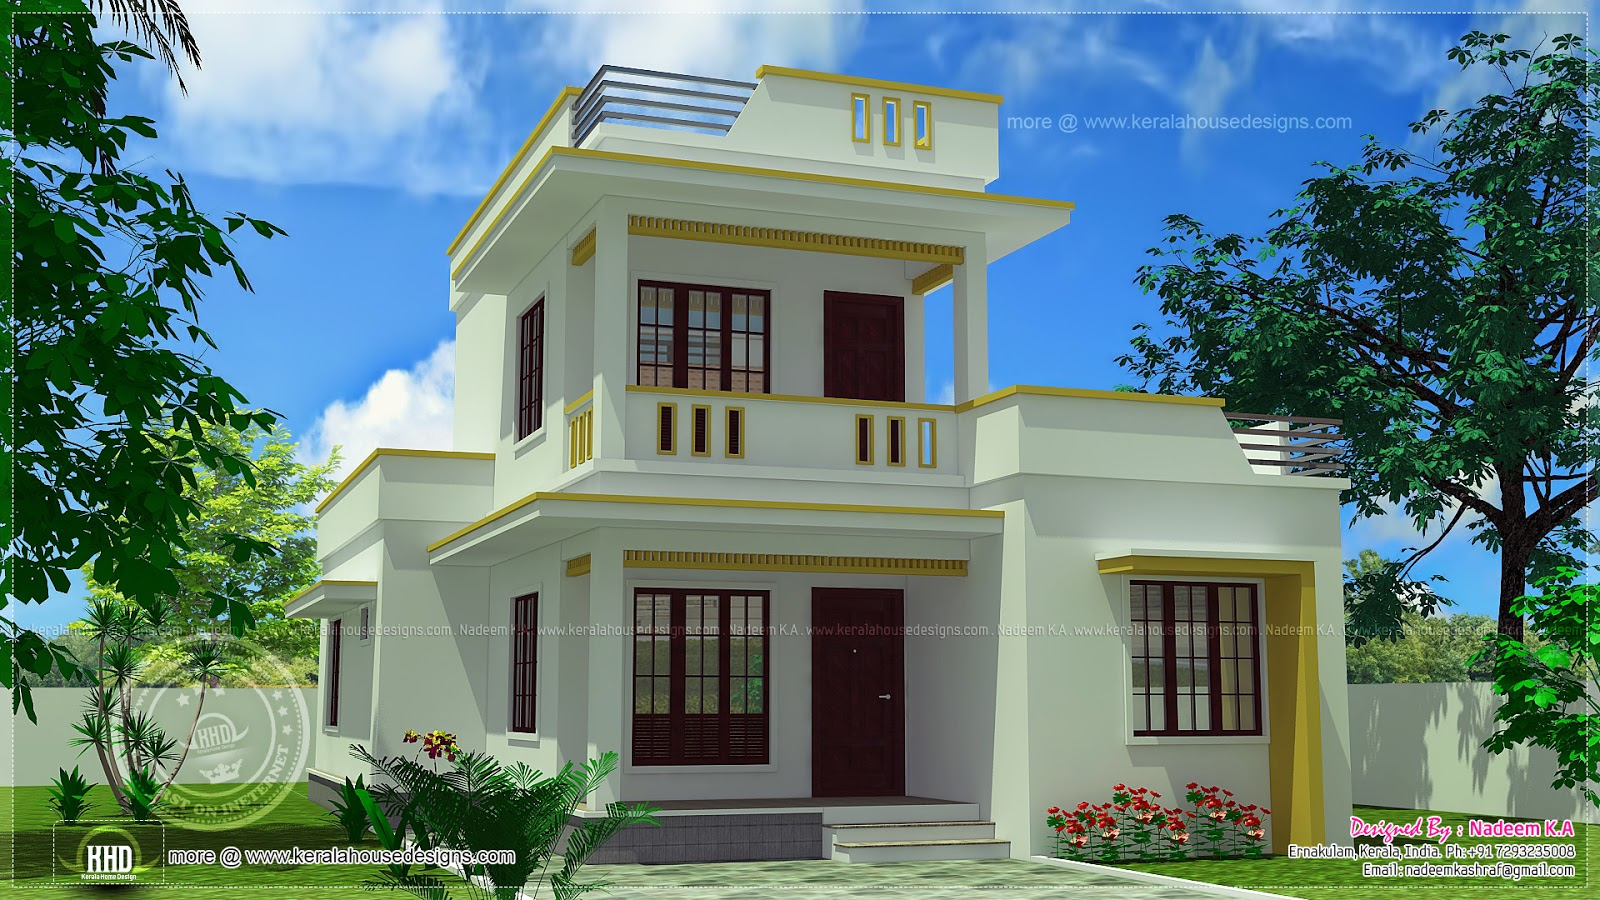 August 2013 kerala home design and floor plans Designer house